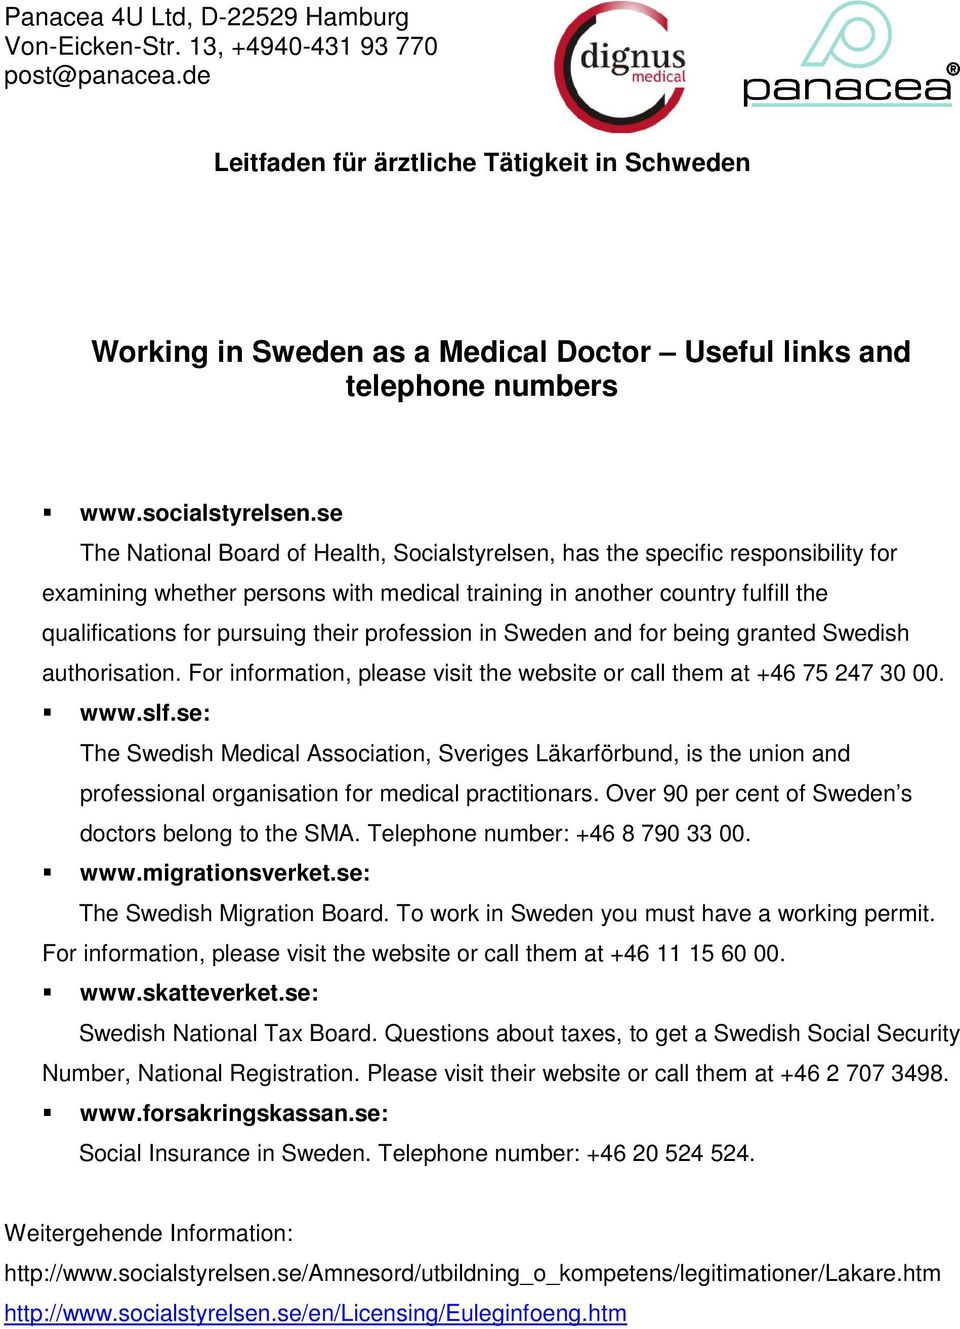 profession in Sweden and for being granted Swedish authorisation. For information, please visit the website or call them at +46 75 247 30 00. www.slf.